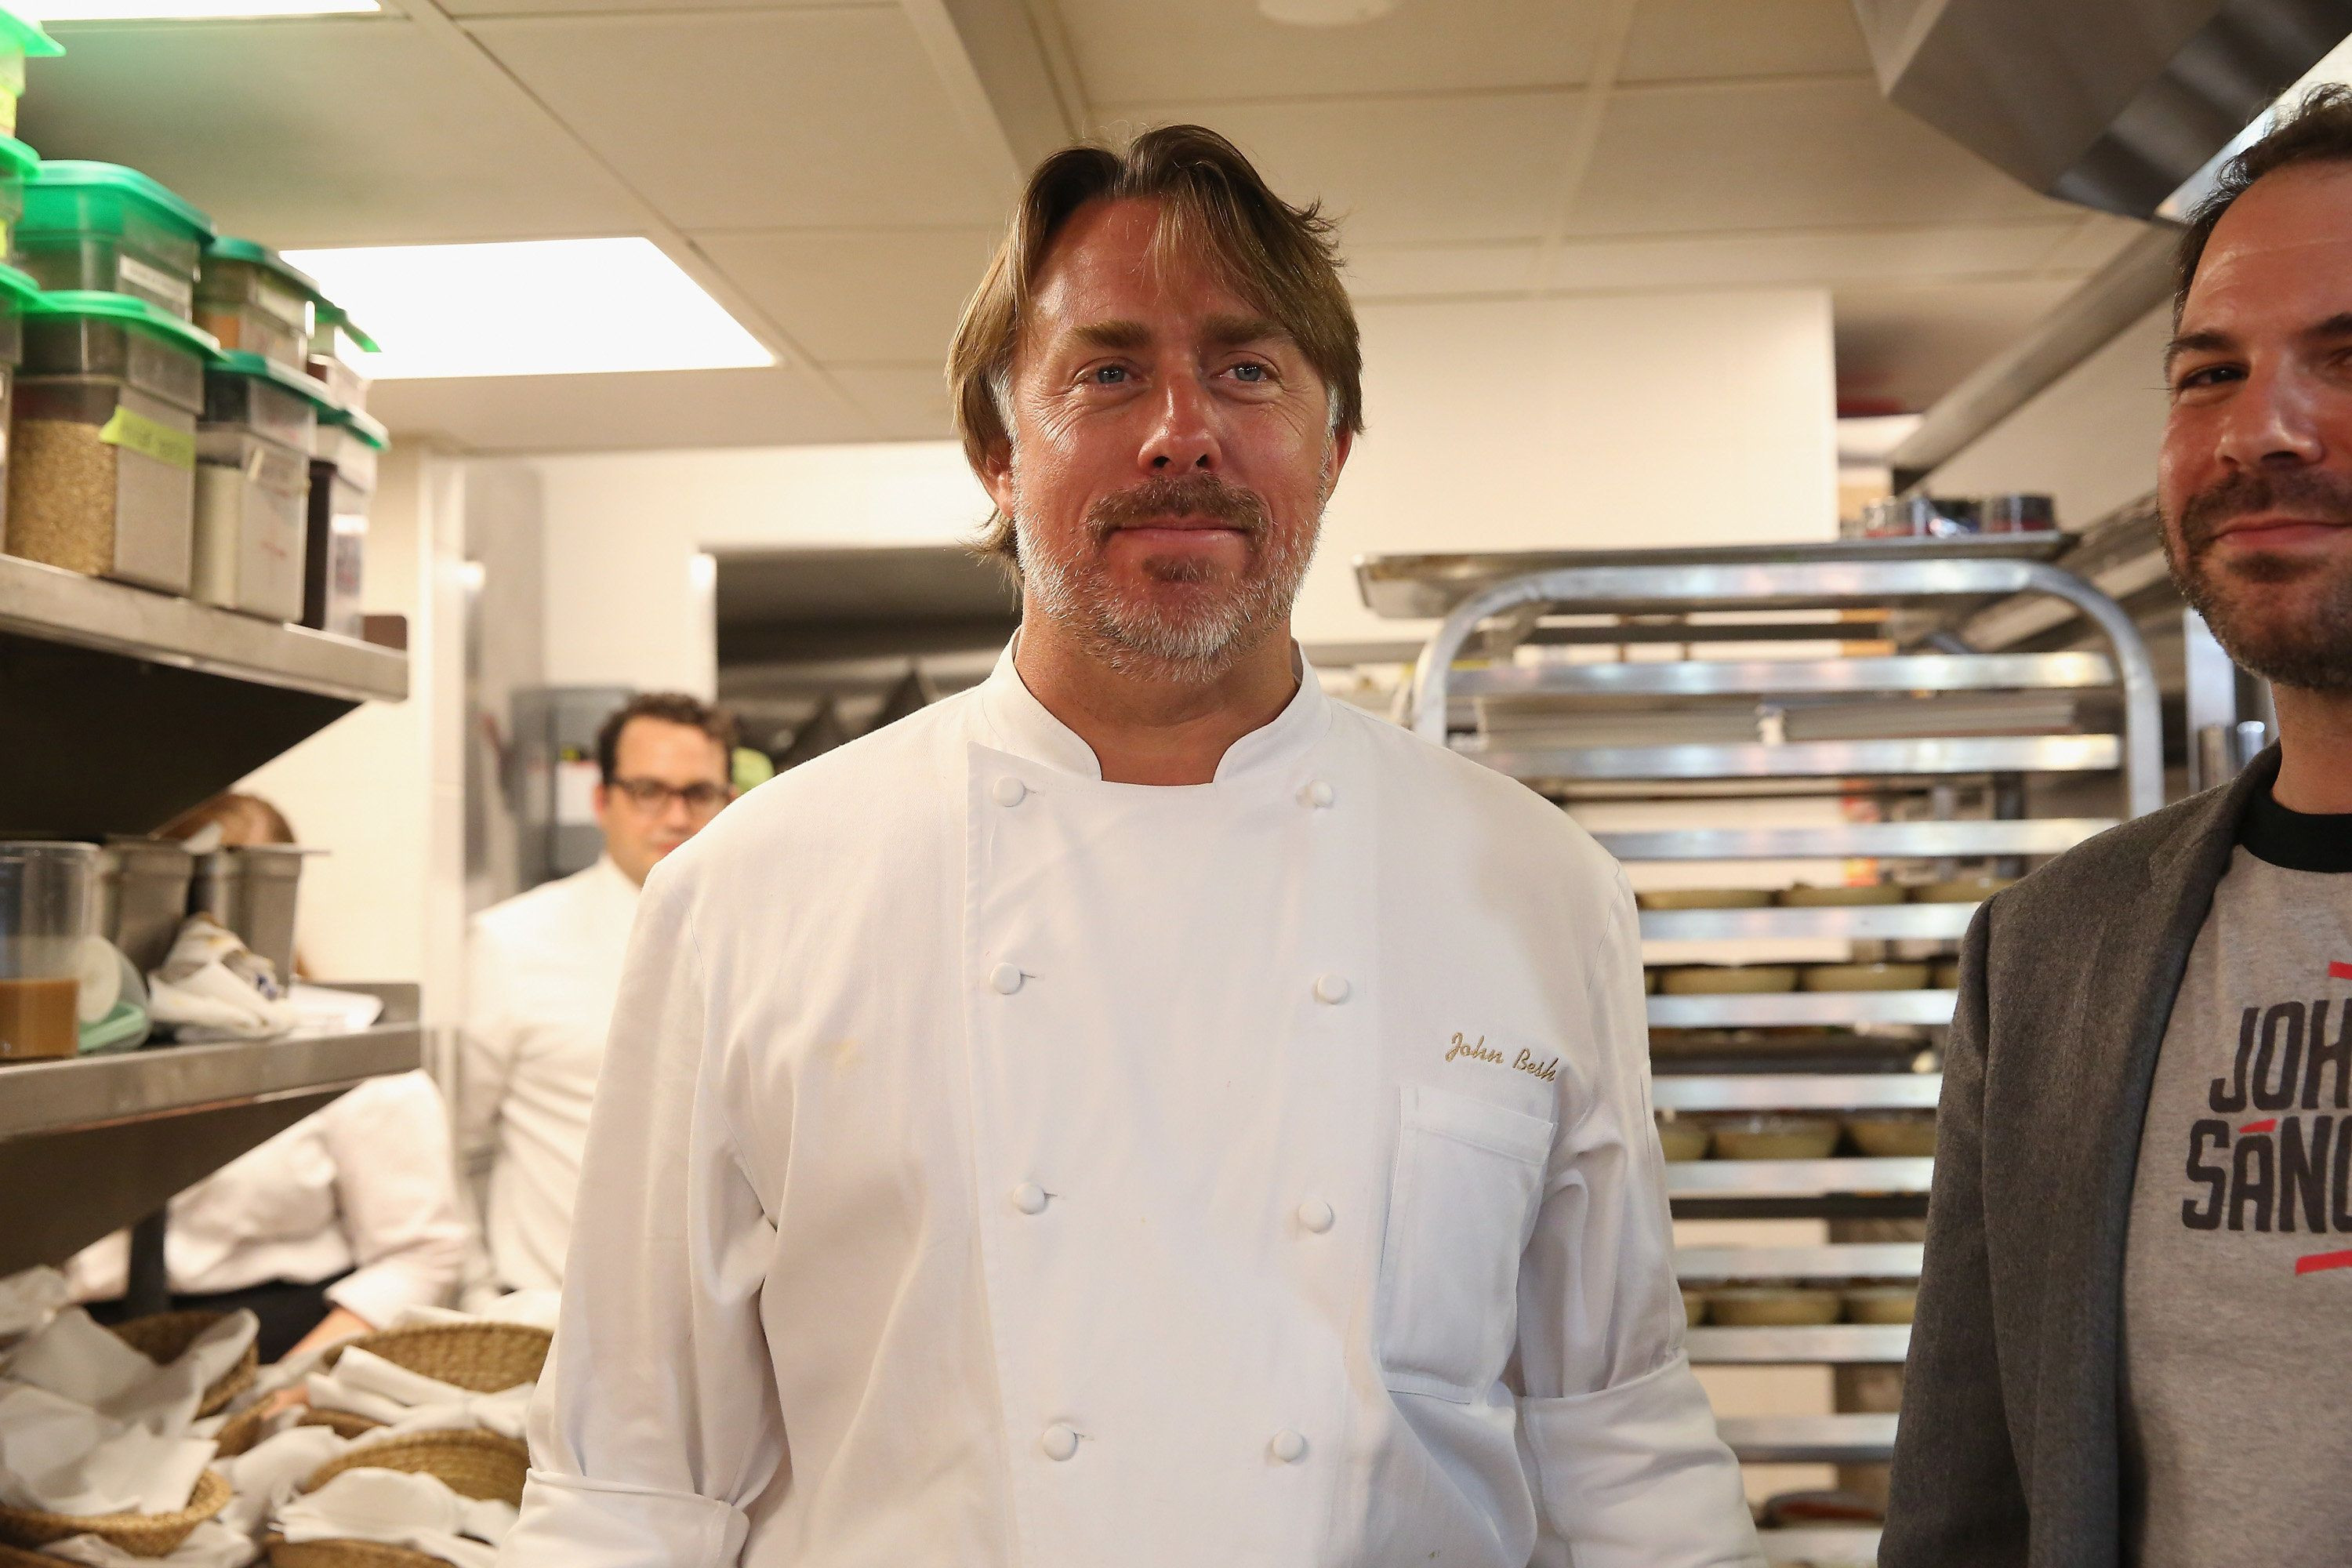 Chef John Besh stepped down from his restaurant group after 25 former and current employees complained of sexual harassment at the company.